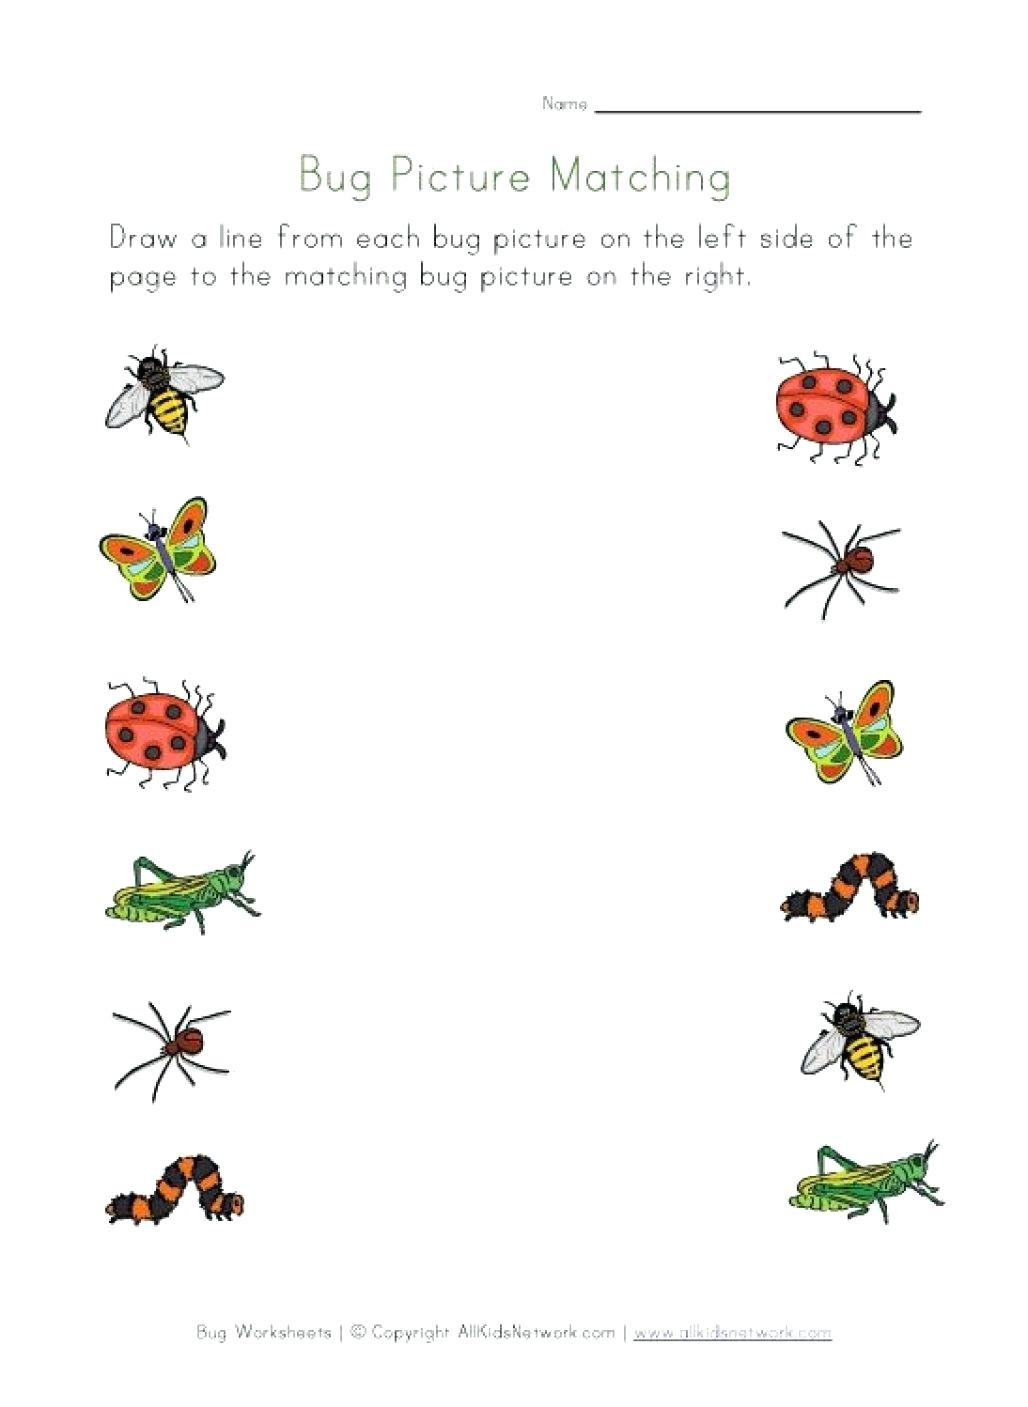 Bug Worksheets for Preschool Bugs Worksheets for Preschool Clover Hatunisi